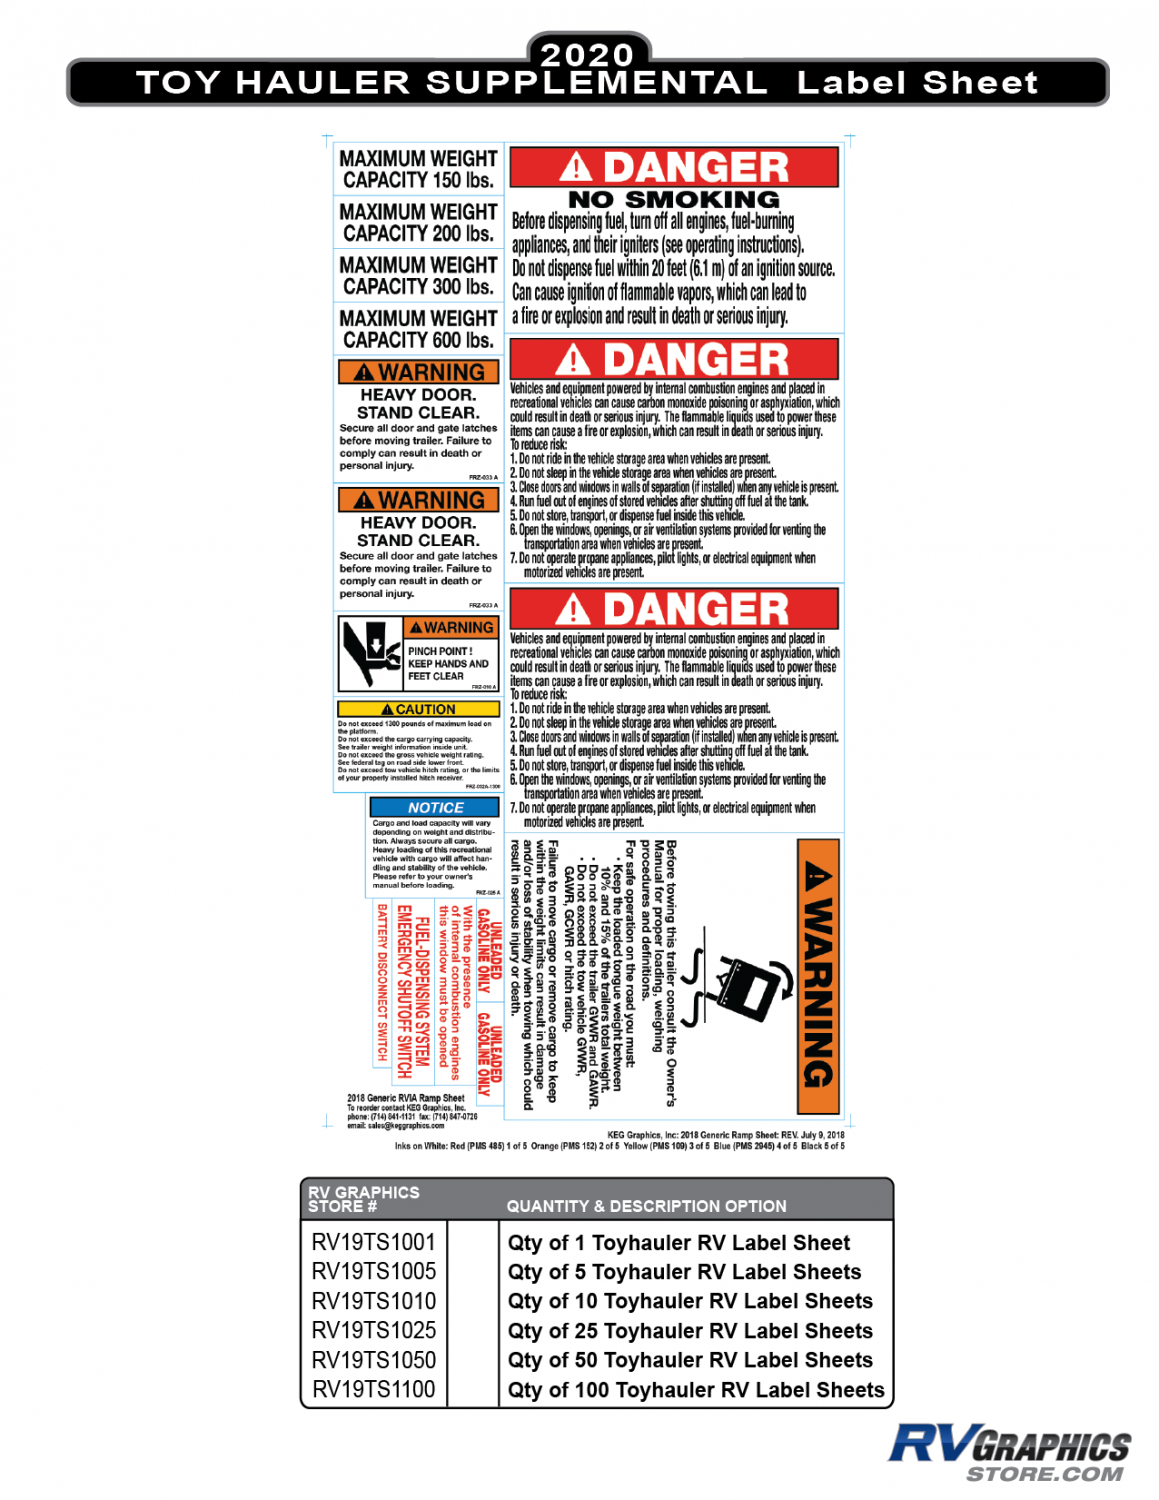 RV Labels - Supplemental RV Toy Hauler Sheet